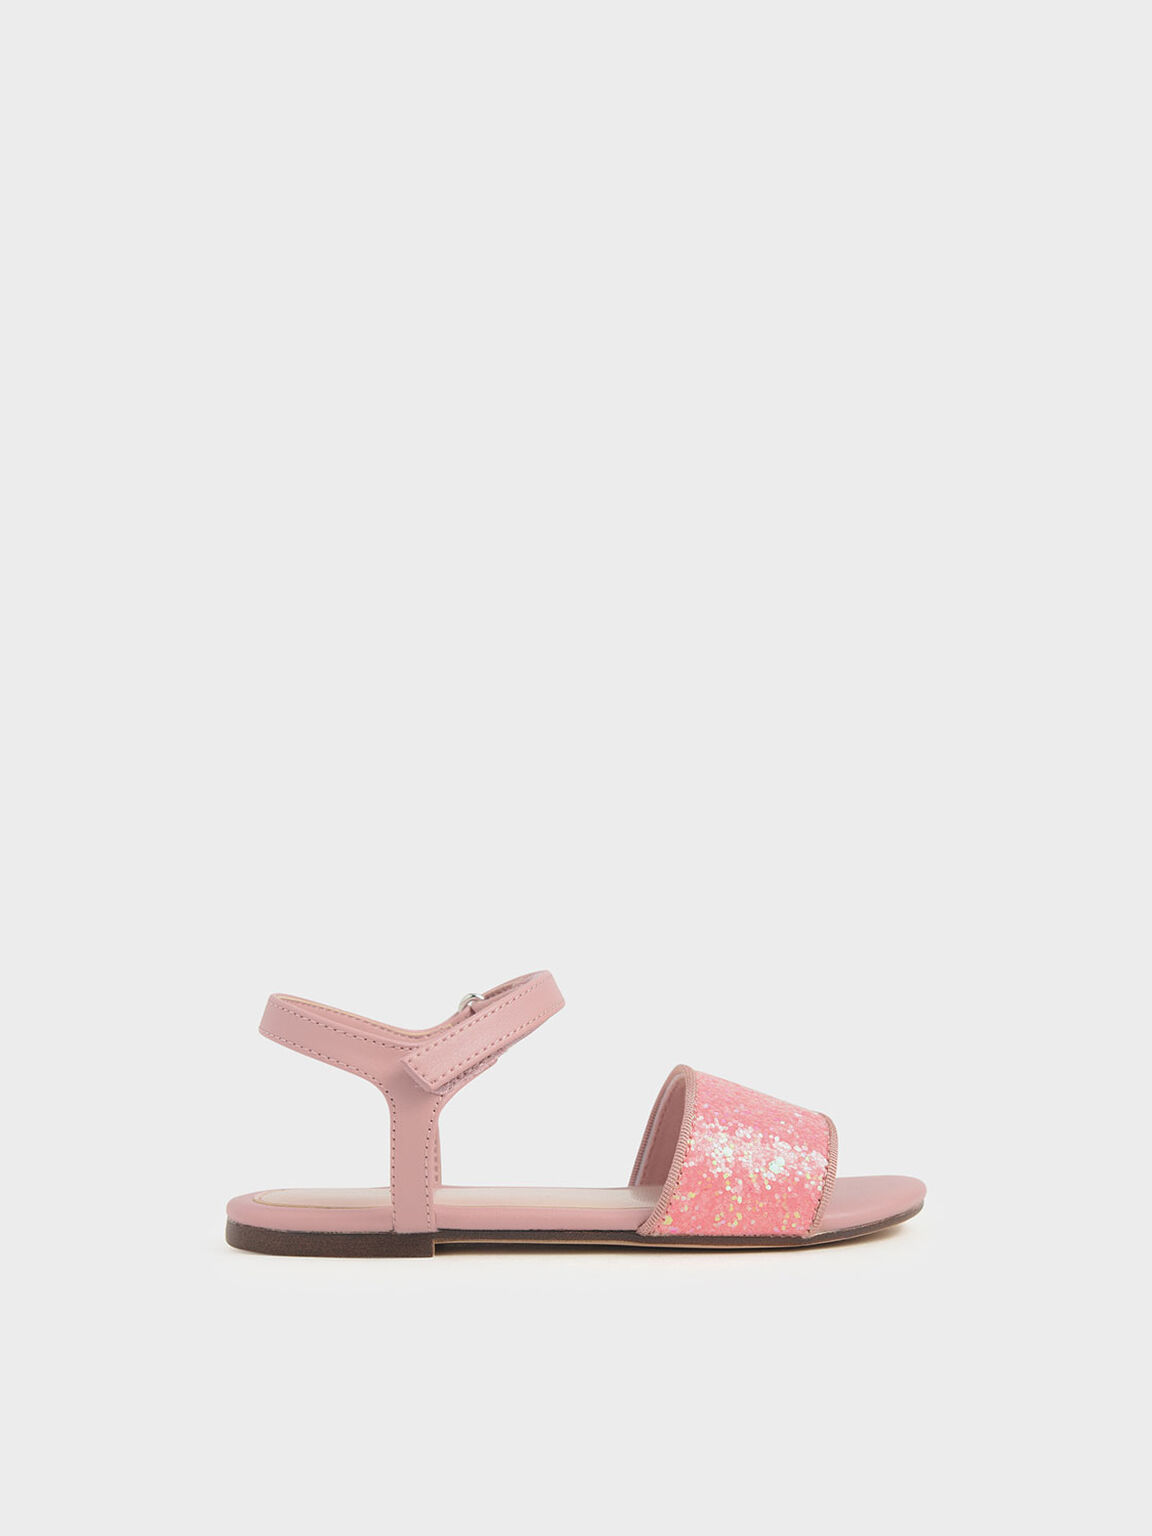 Girls' Glitter Sandals, Pink, hi-res